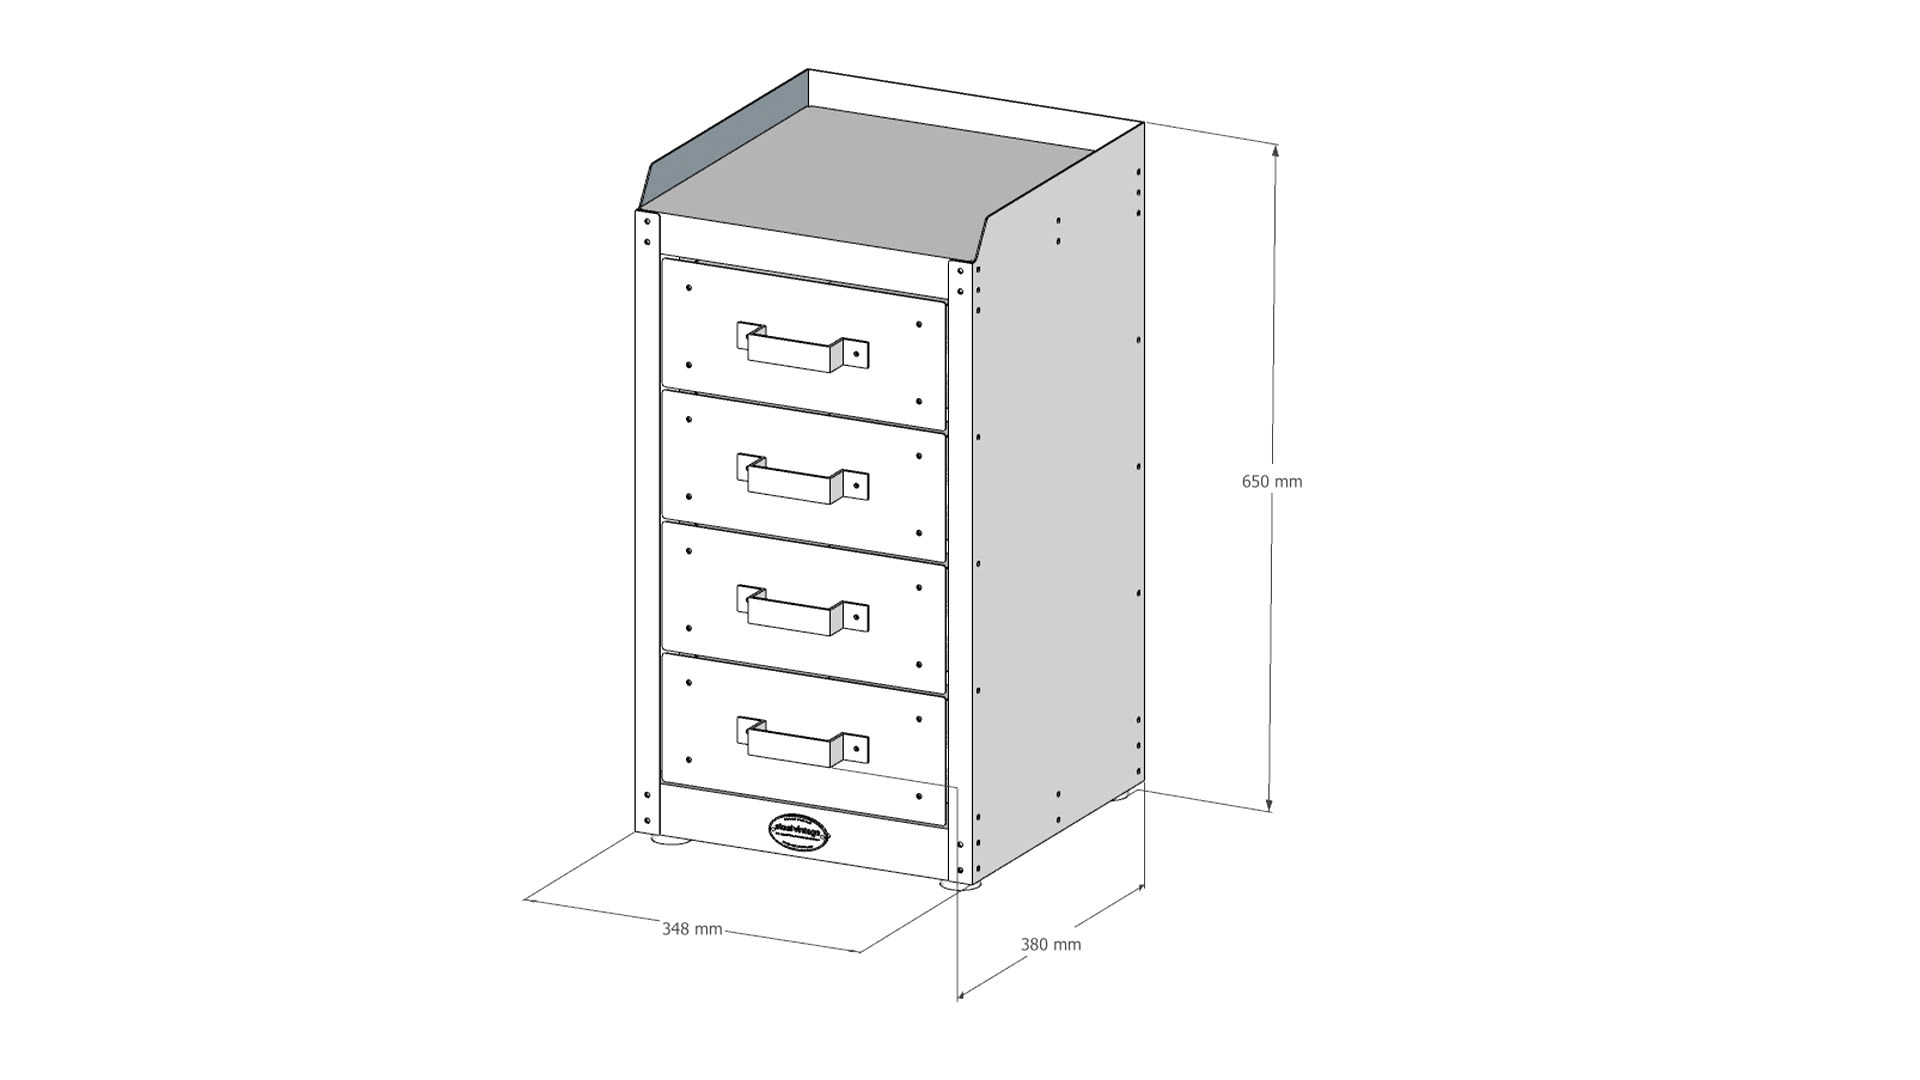 Steel Vintage drawer unit technical drawing